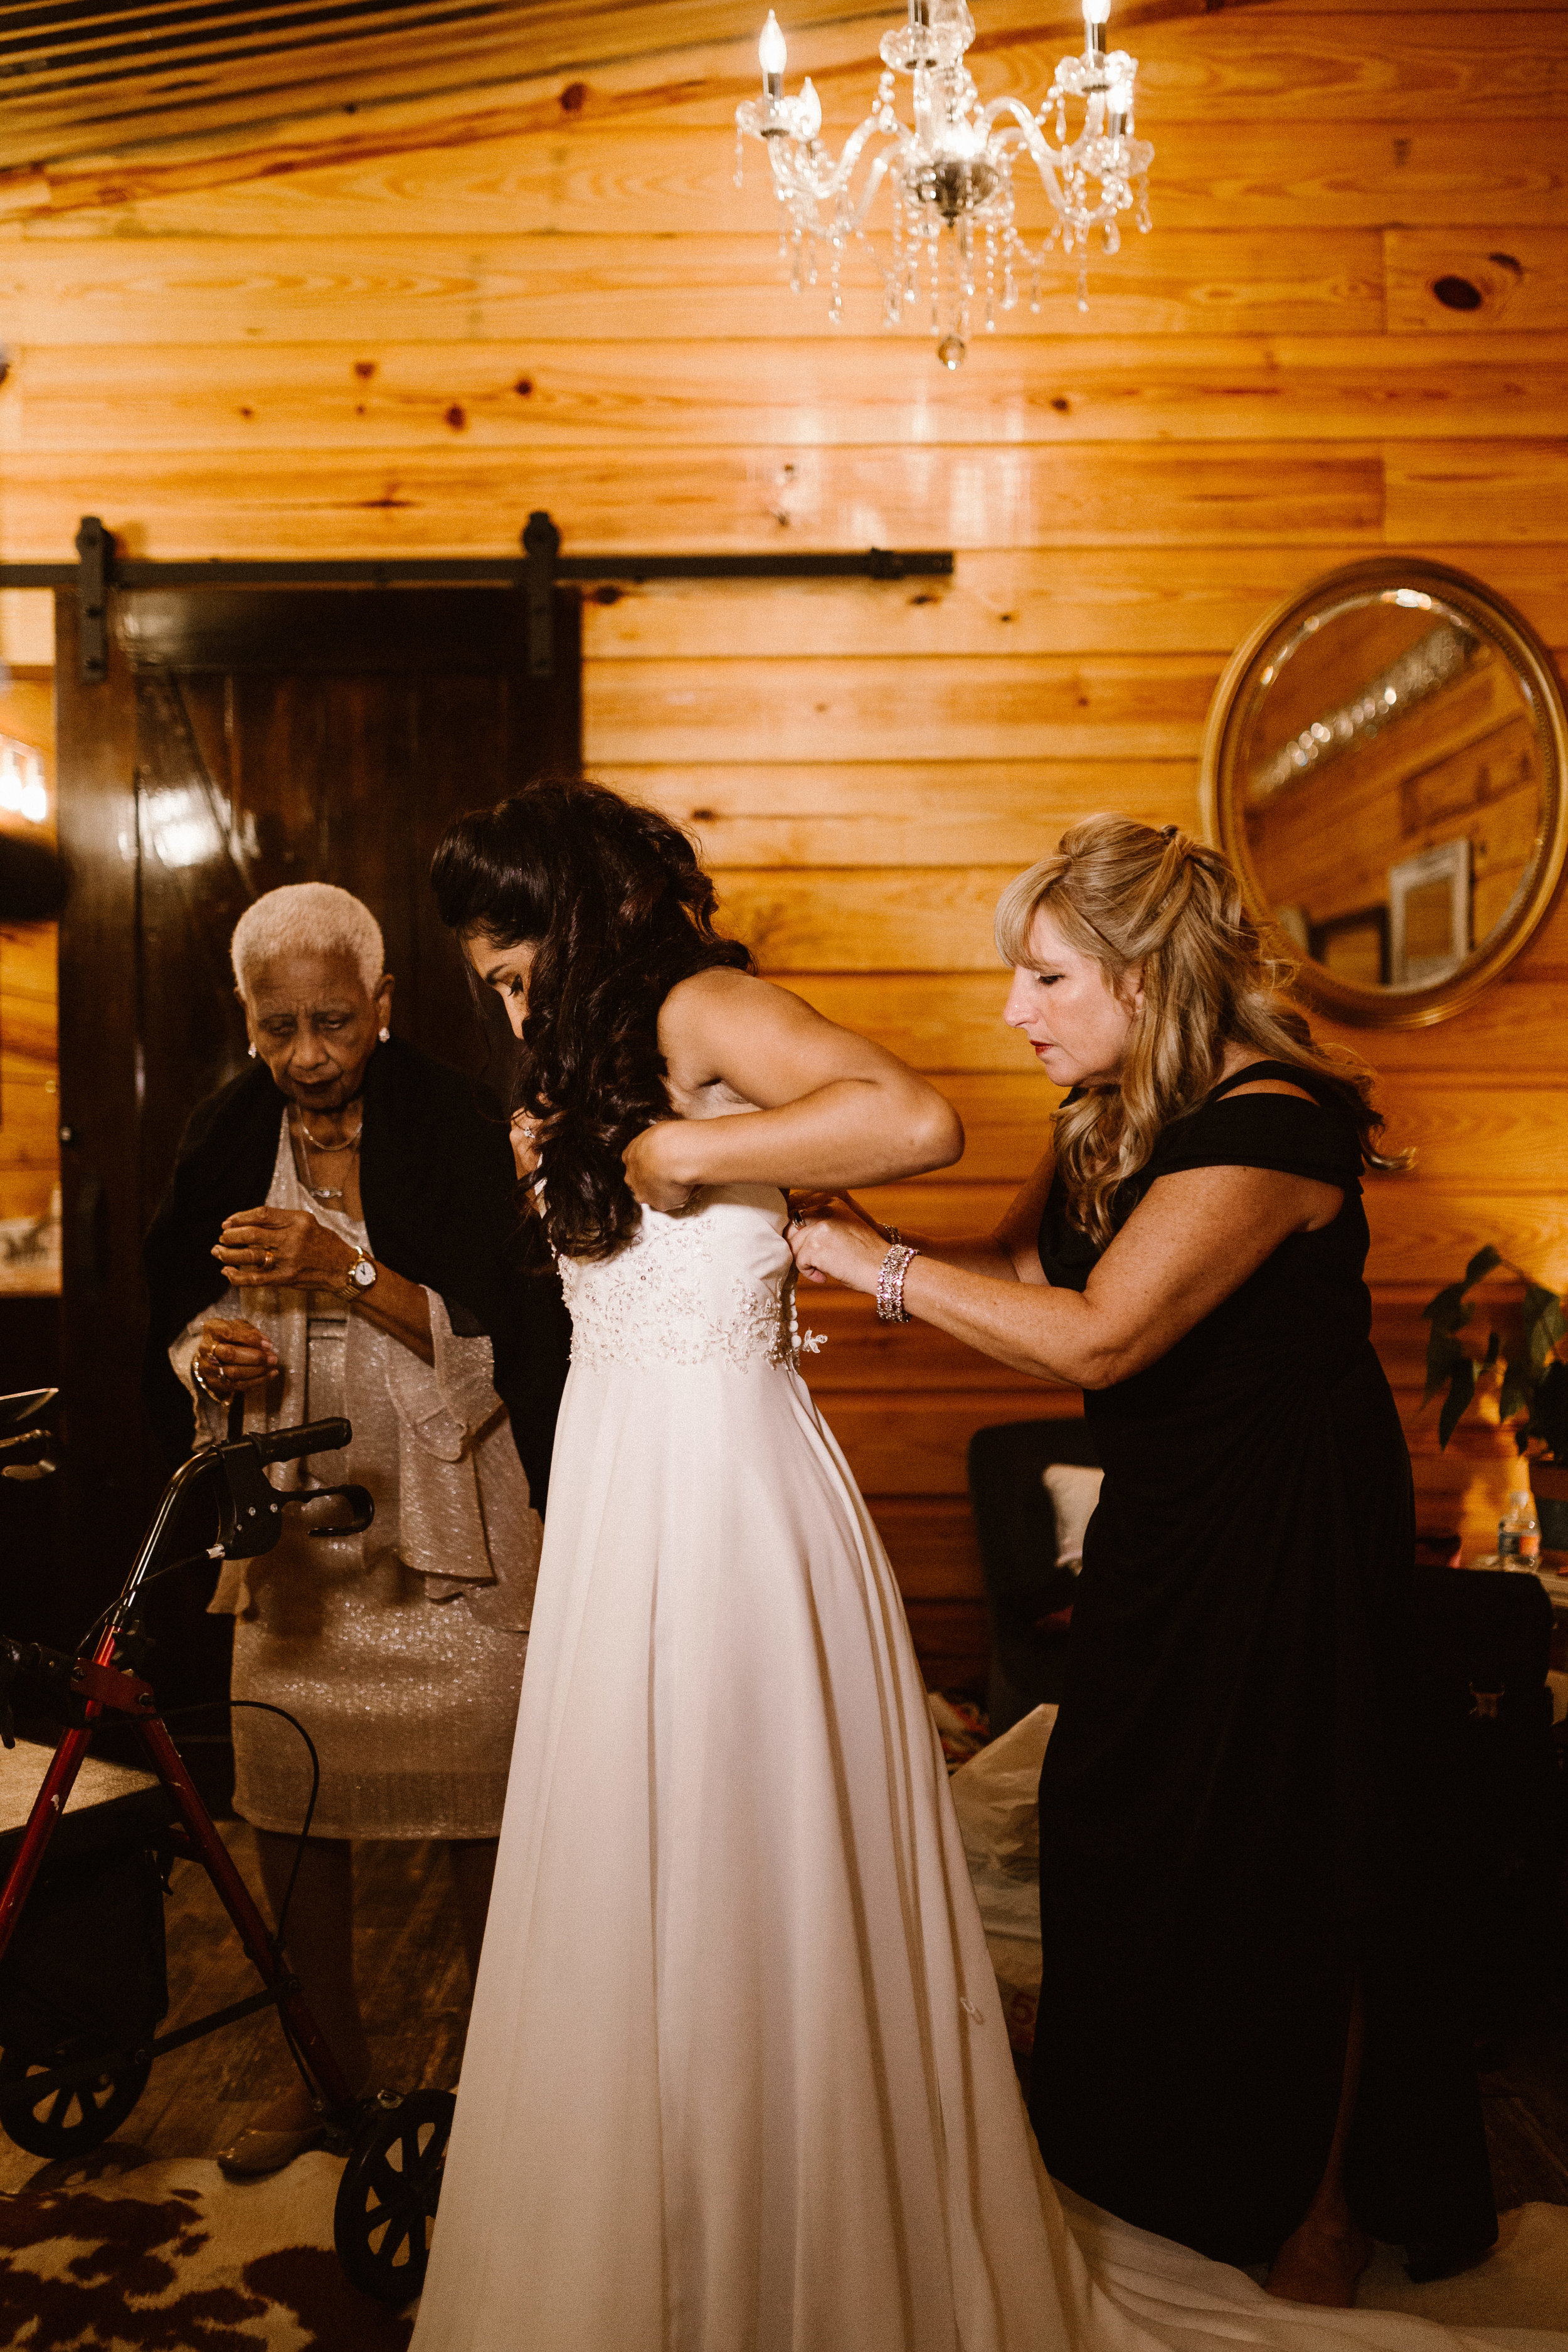 2017.10.08 Zach and Ashley Courson Wedding Club Lake Plantation (51 of 1079).jpg